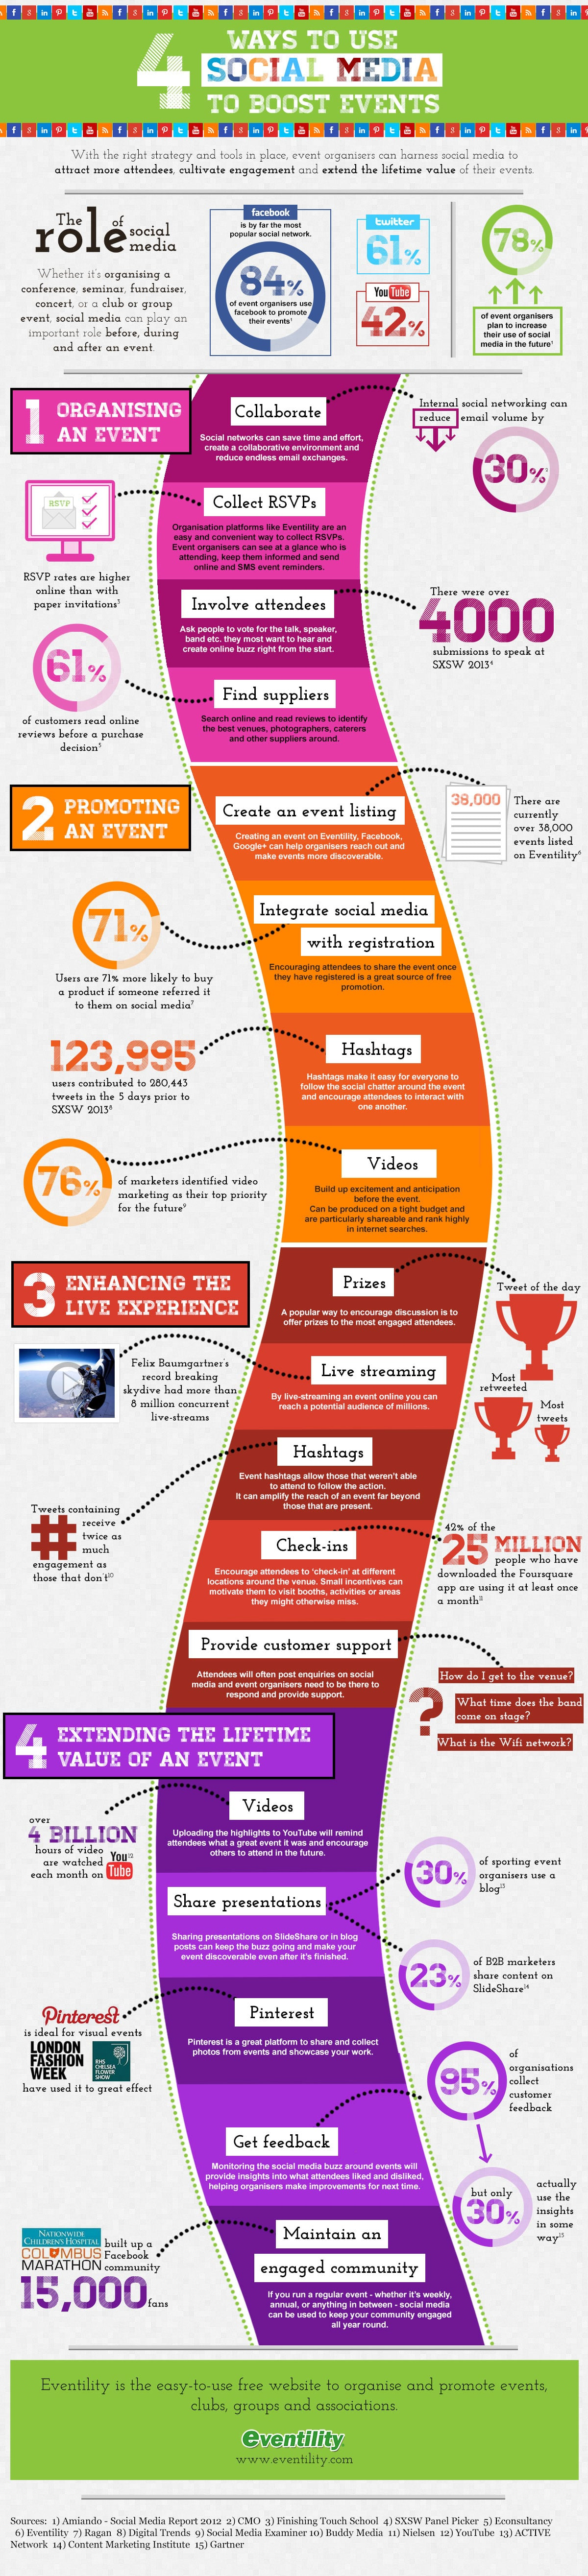 4 Ways To Use Social Media To Promote Your Next Event [Infographic]